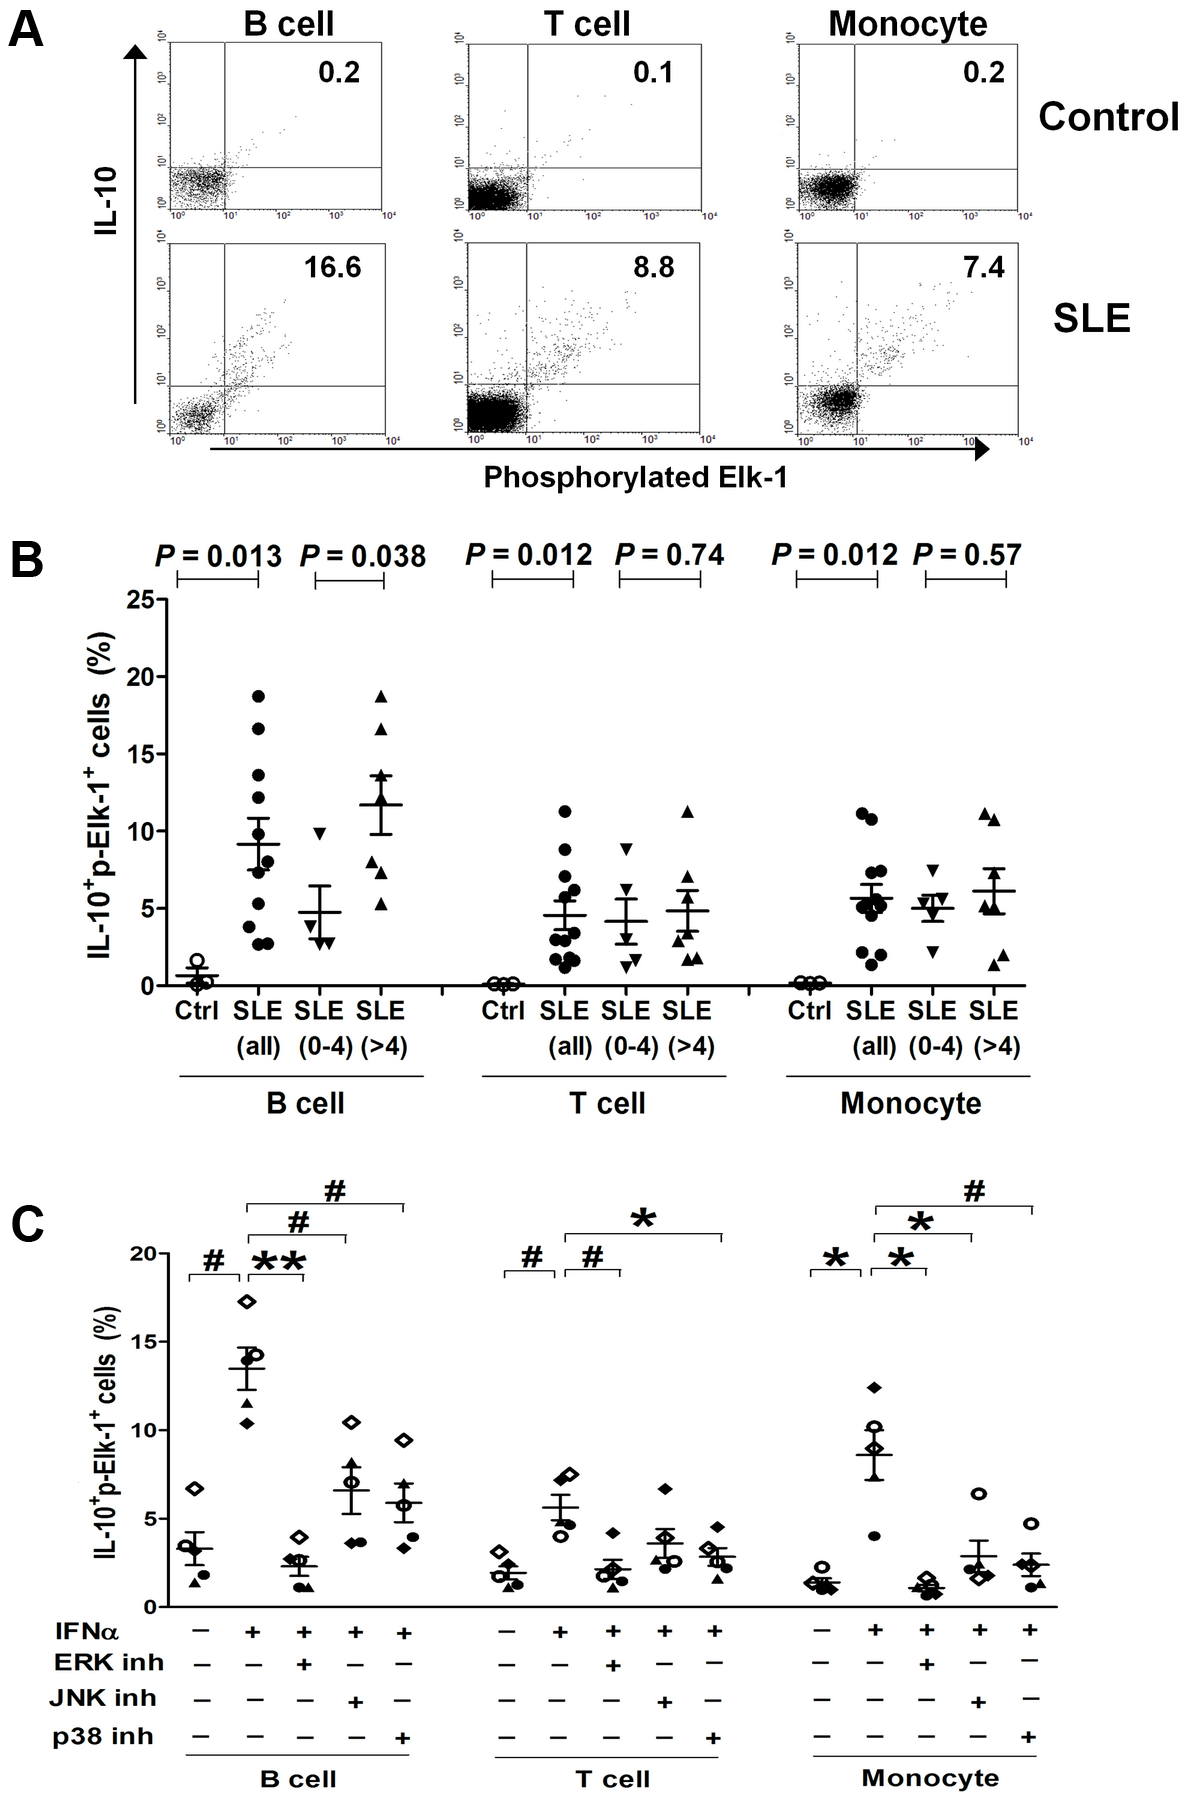 Co-expression of p-Elk-1 and IL-10 in PBMCs.